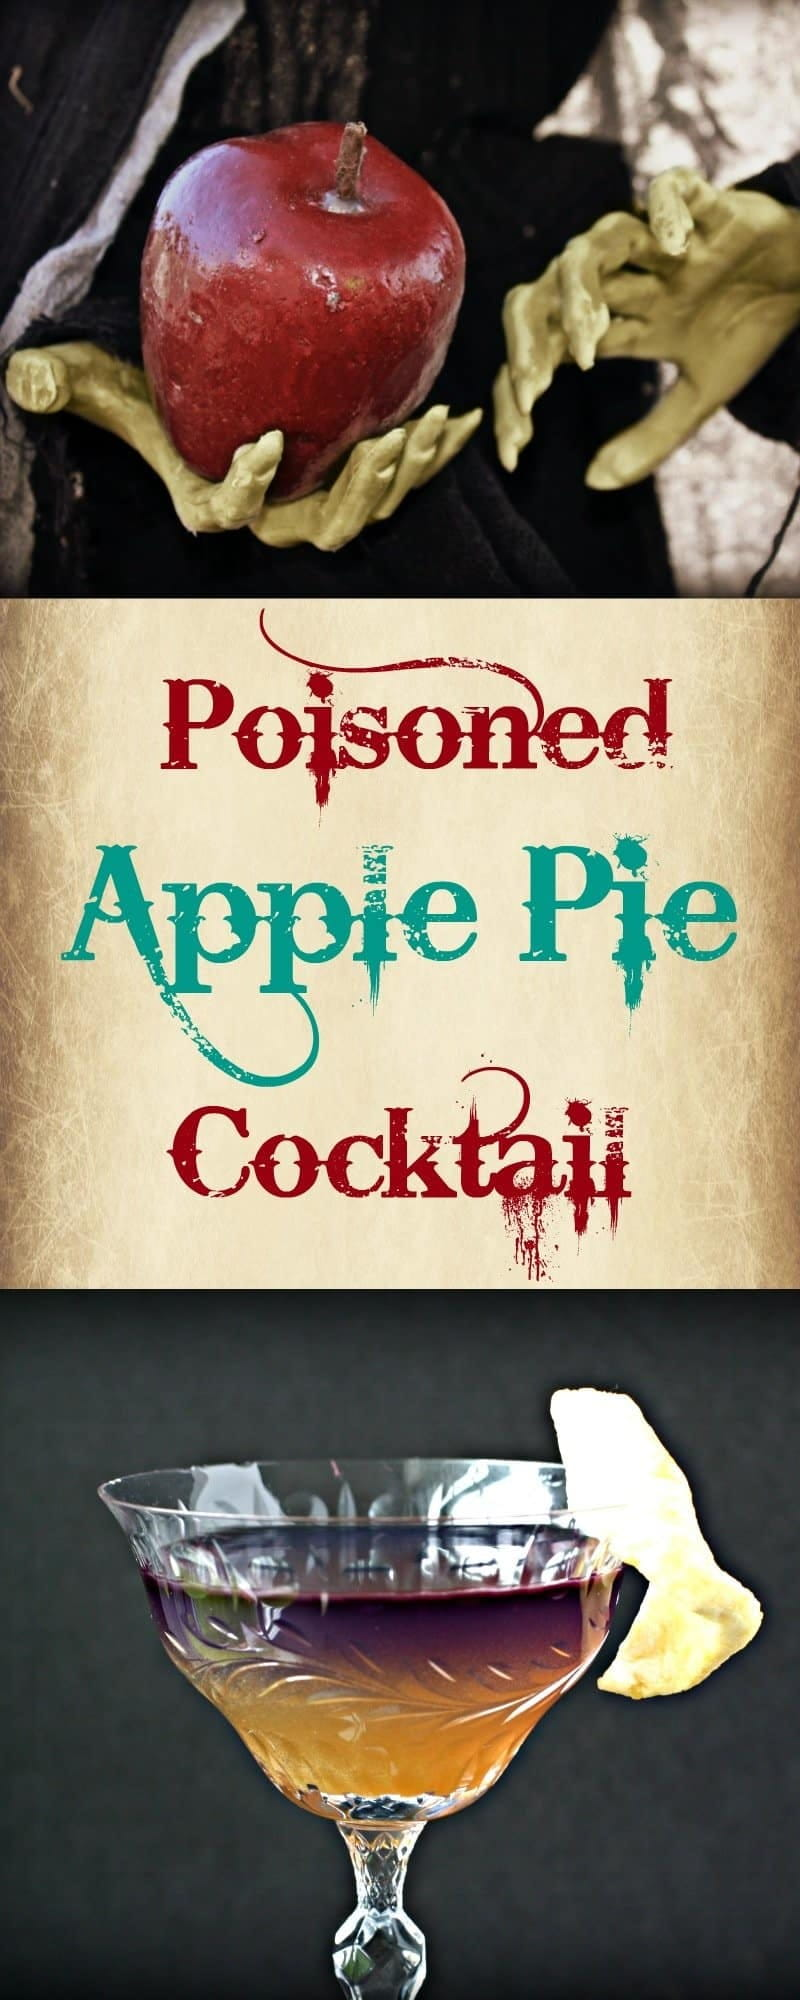 Snow White's Evil Queen could rule the world if she served this Poisoned Apple Pie Cocktail instead of an apple. Try this recipe and you can rule too.